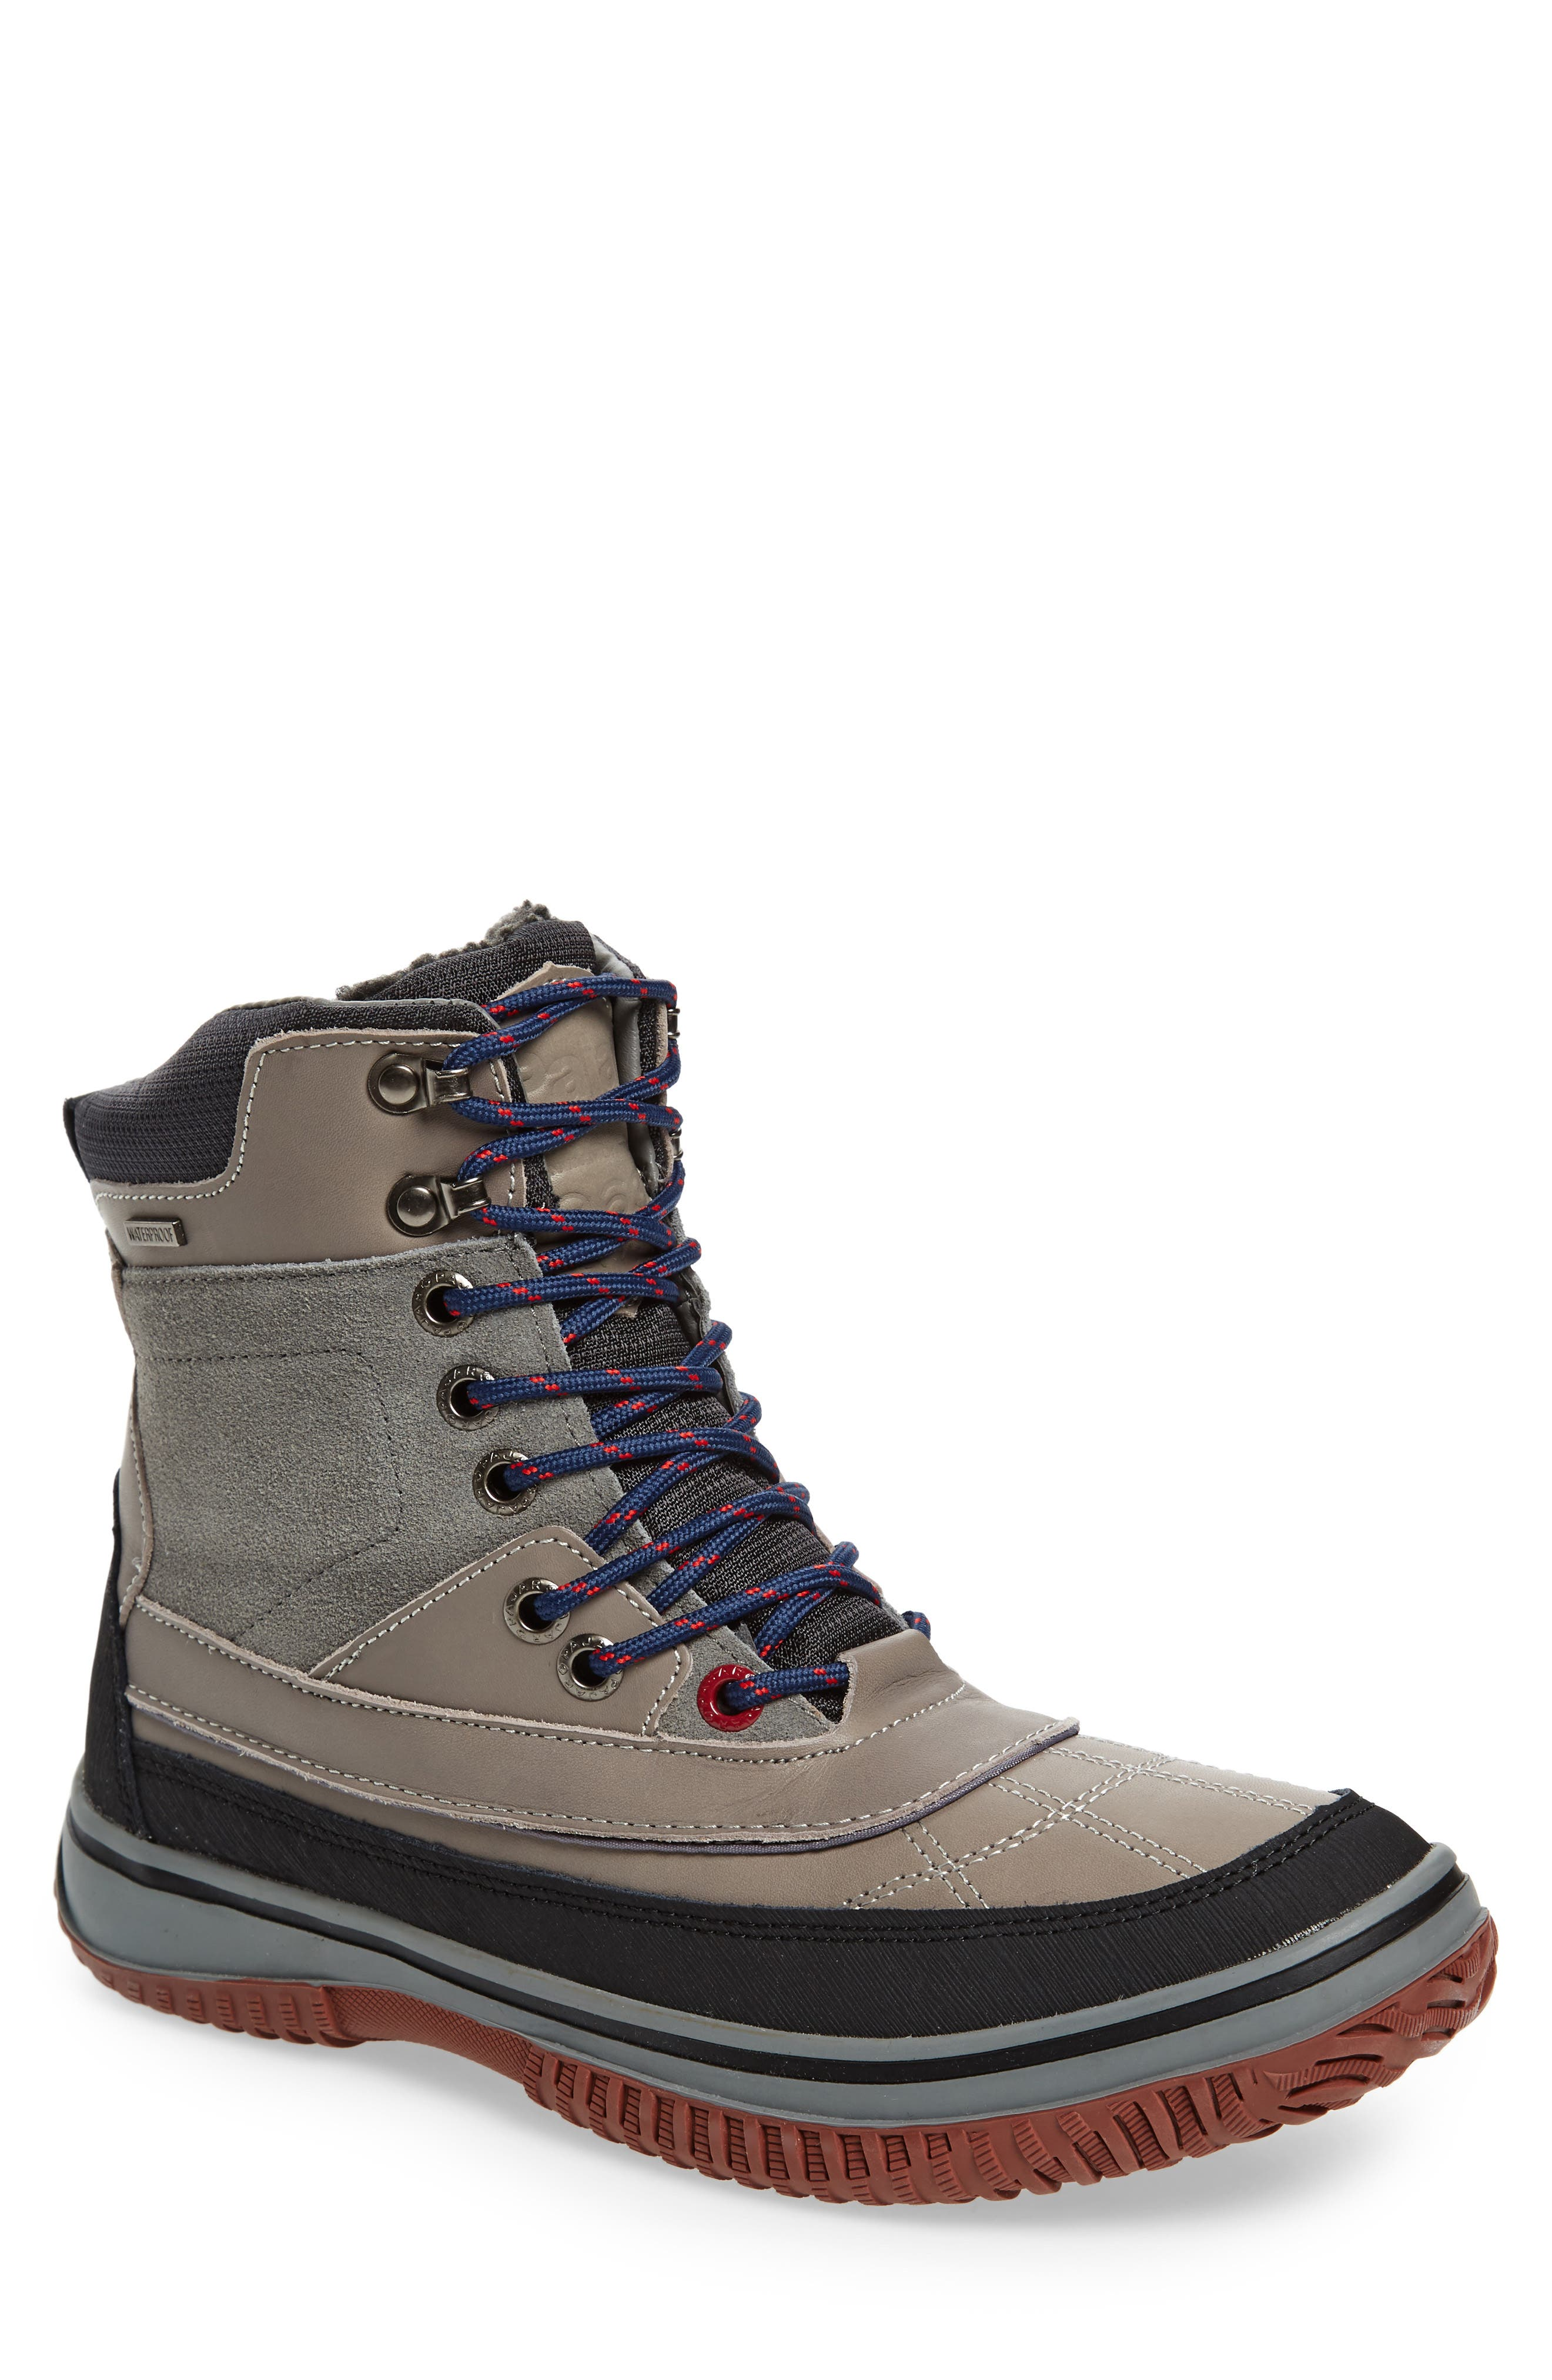 Gaspar Waterproof Winter Boot,                             Main thumbnail 1, color,                             GREY LEATHER